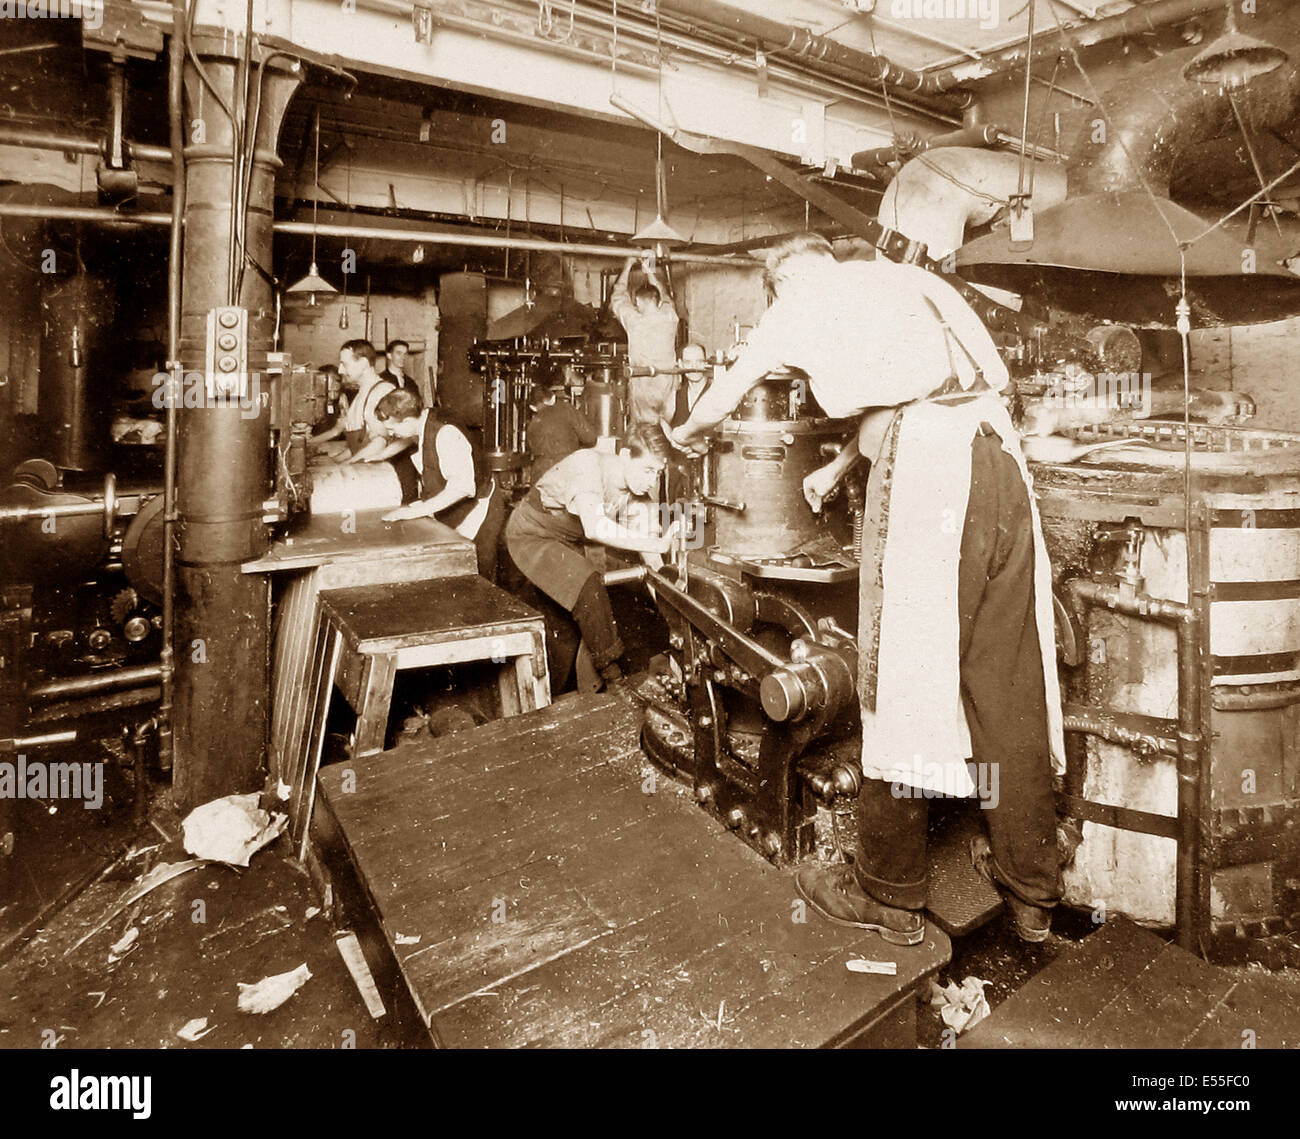 Publishing the Liverpool Express and Weekly Courier - Plate Casting early 1900s - Stock Image